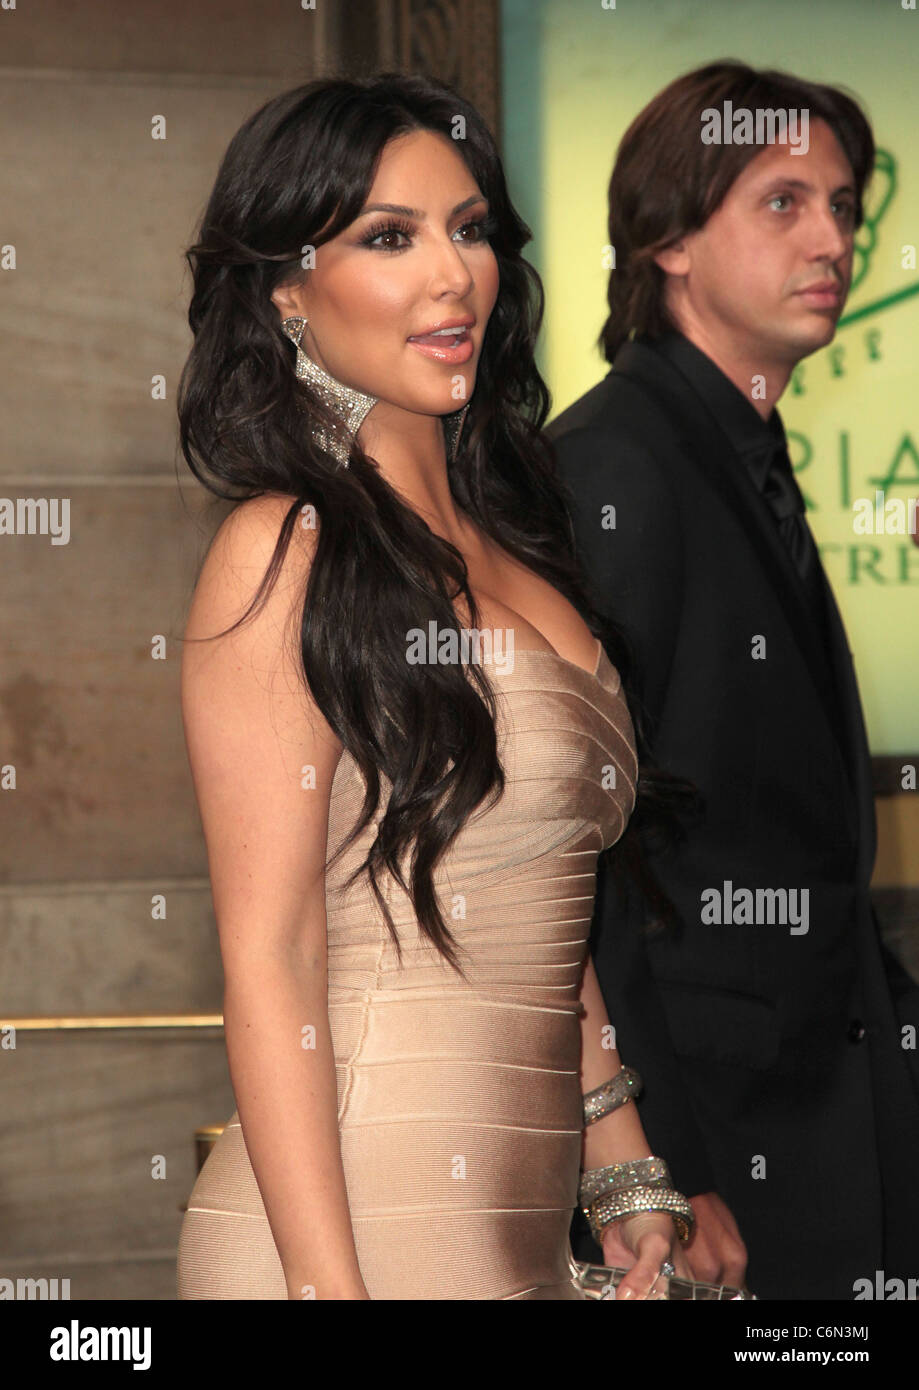 Kim Kardashian The Wedding Of LaLa Vasquez And Carmelo Anthony At Cipriani 42nd Street New York City USA